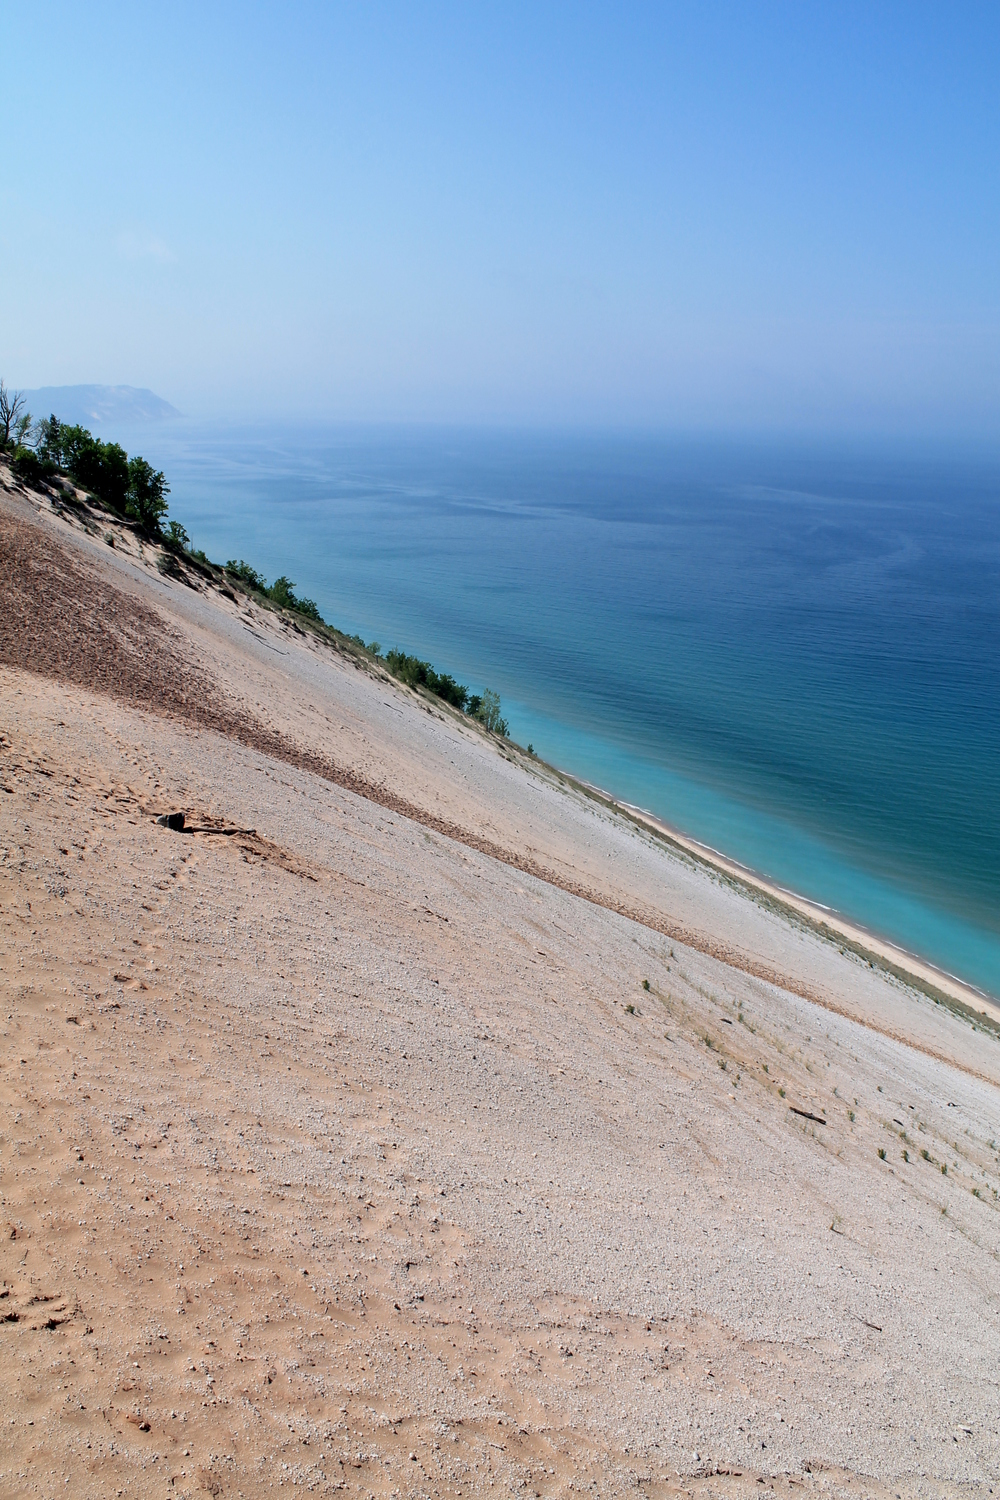 Lake Michigan Overlook, Sleeping Bear Dunes National Lakeshore, MI, USA